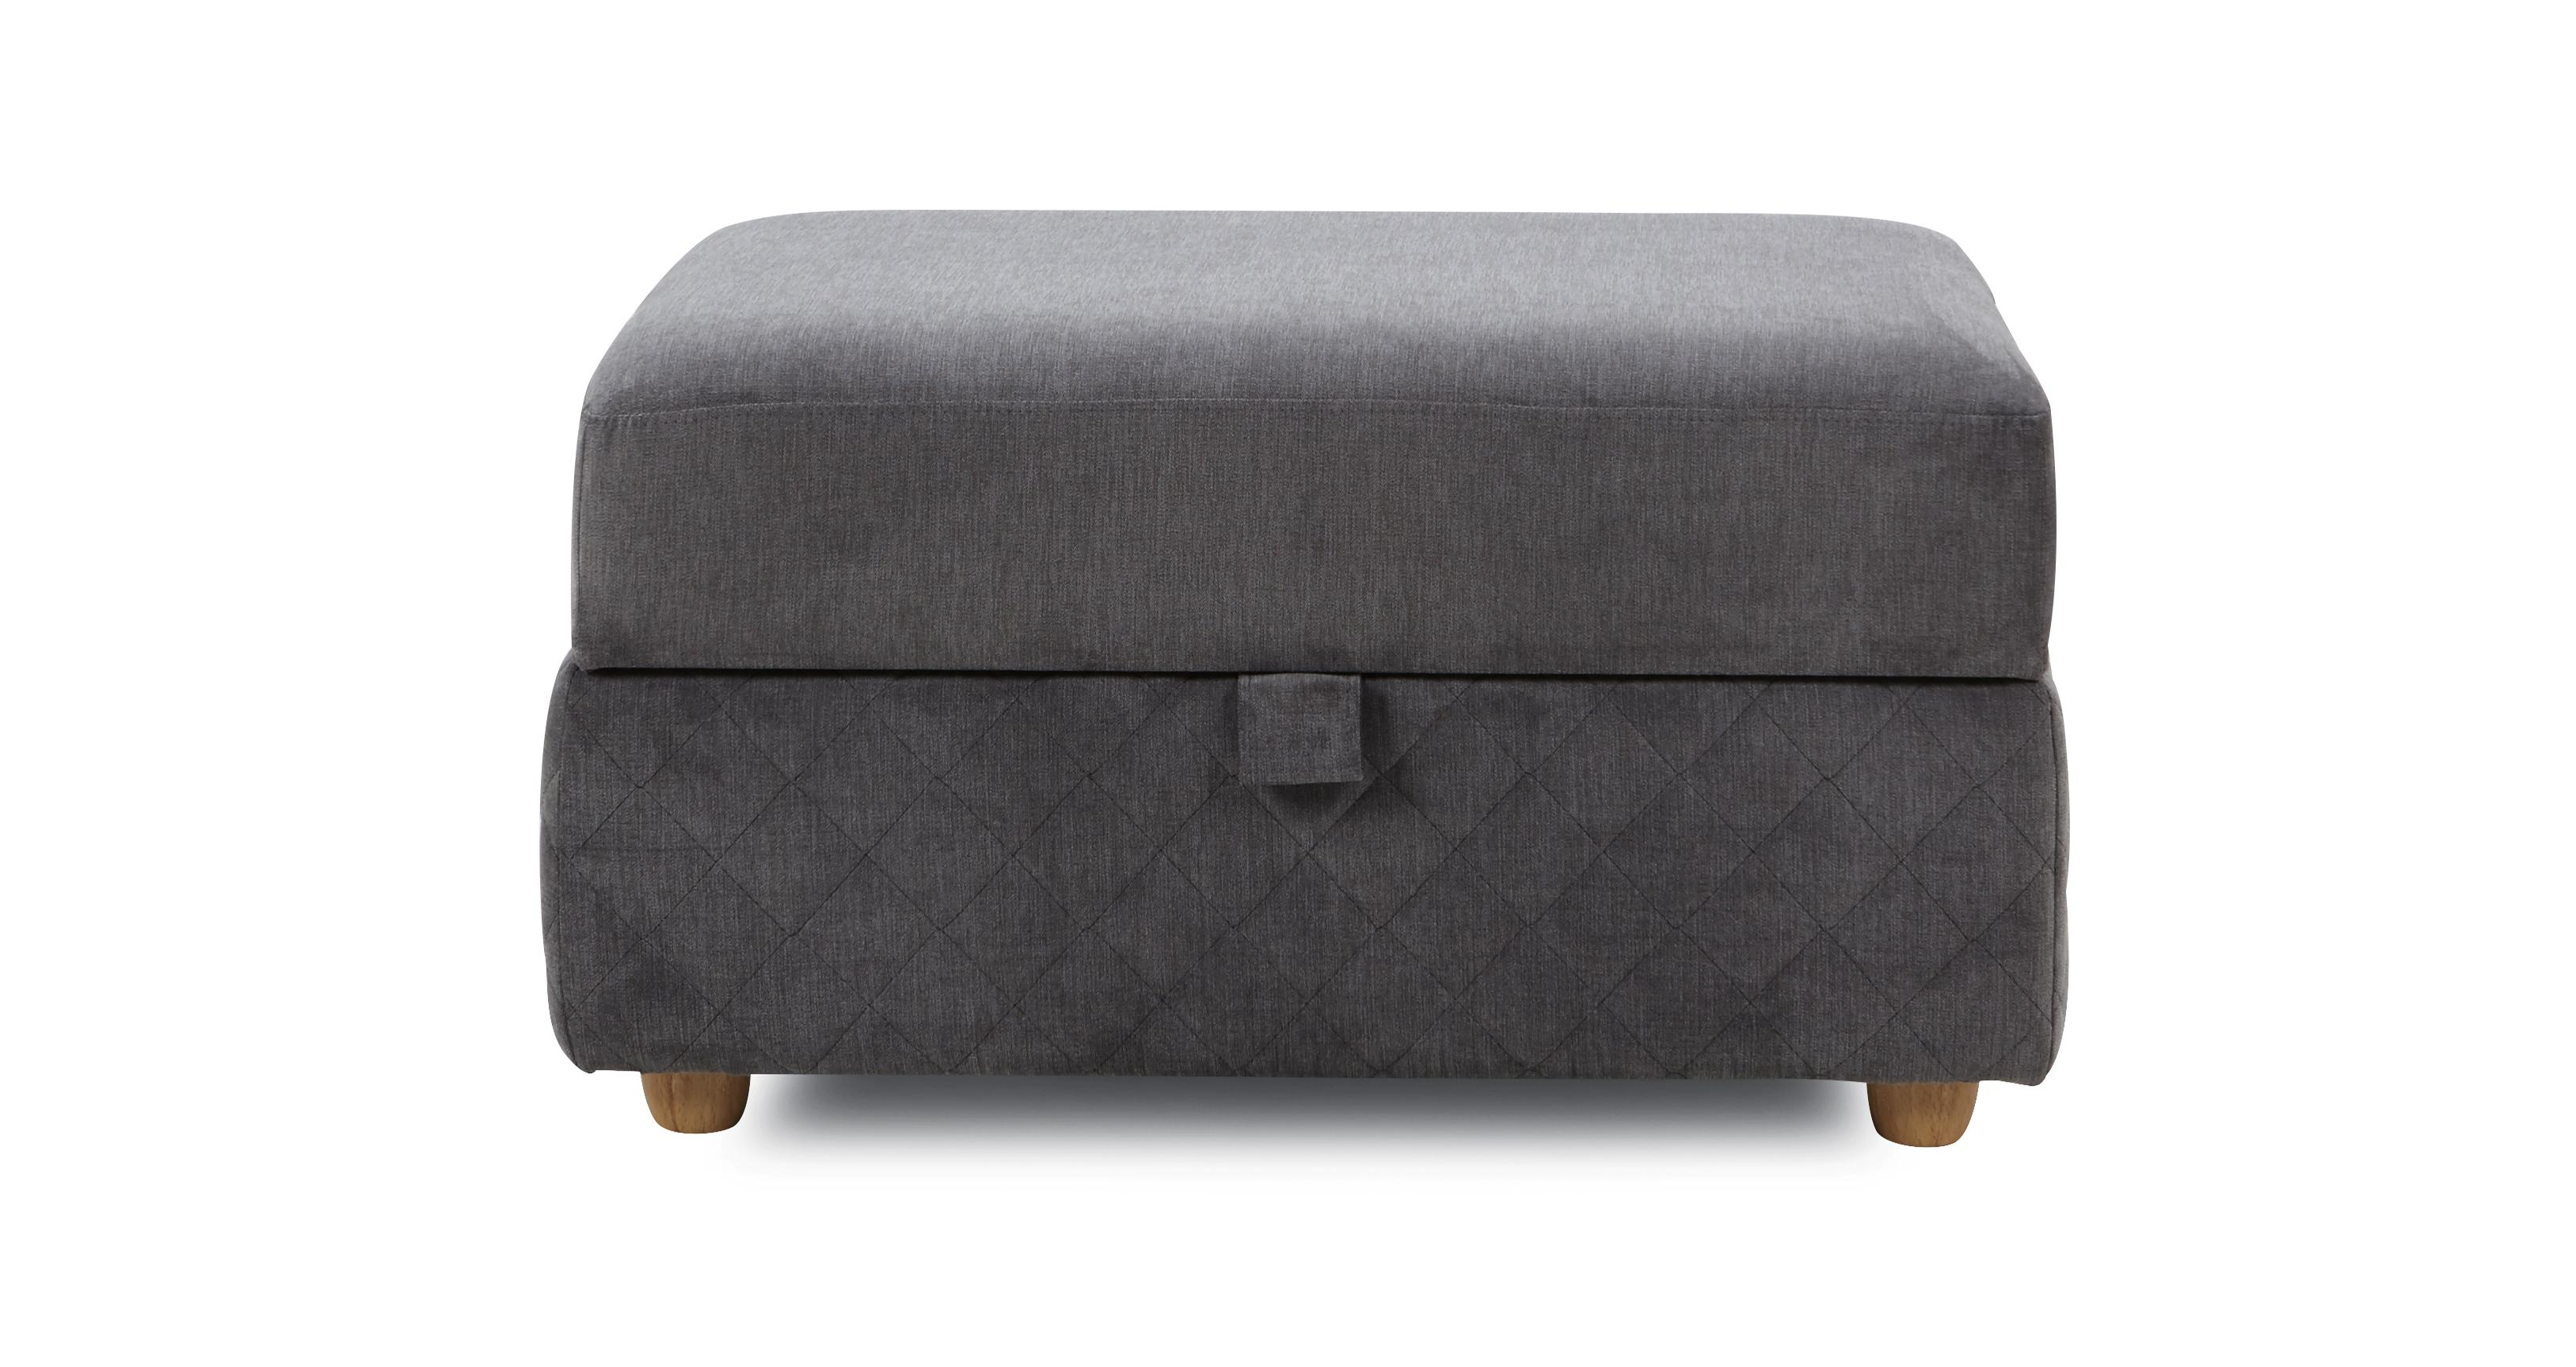 sc 1 st  DFS & Astaire Large Storage Footstool Sherbet   DFS islam-shia.org